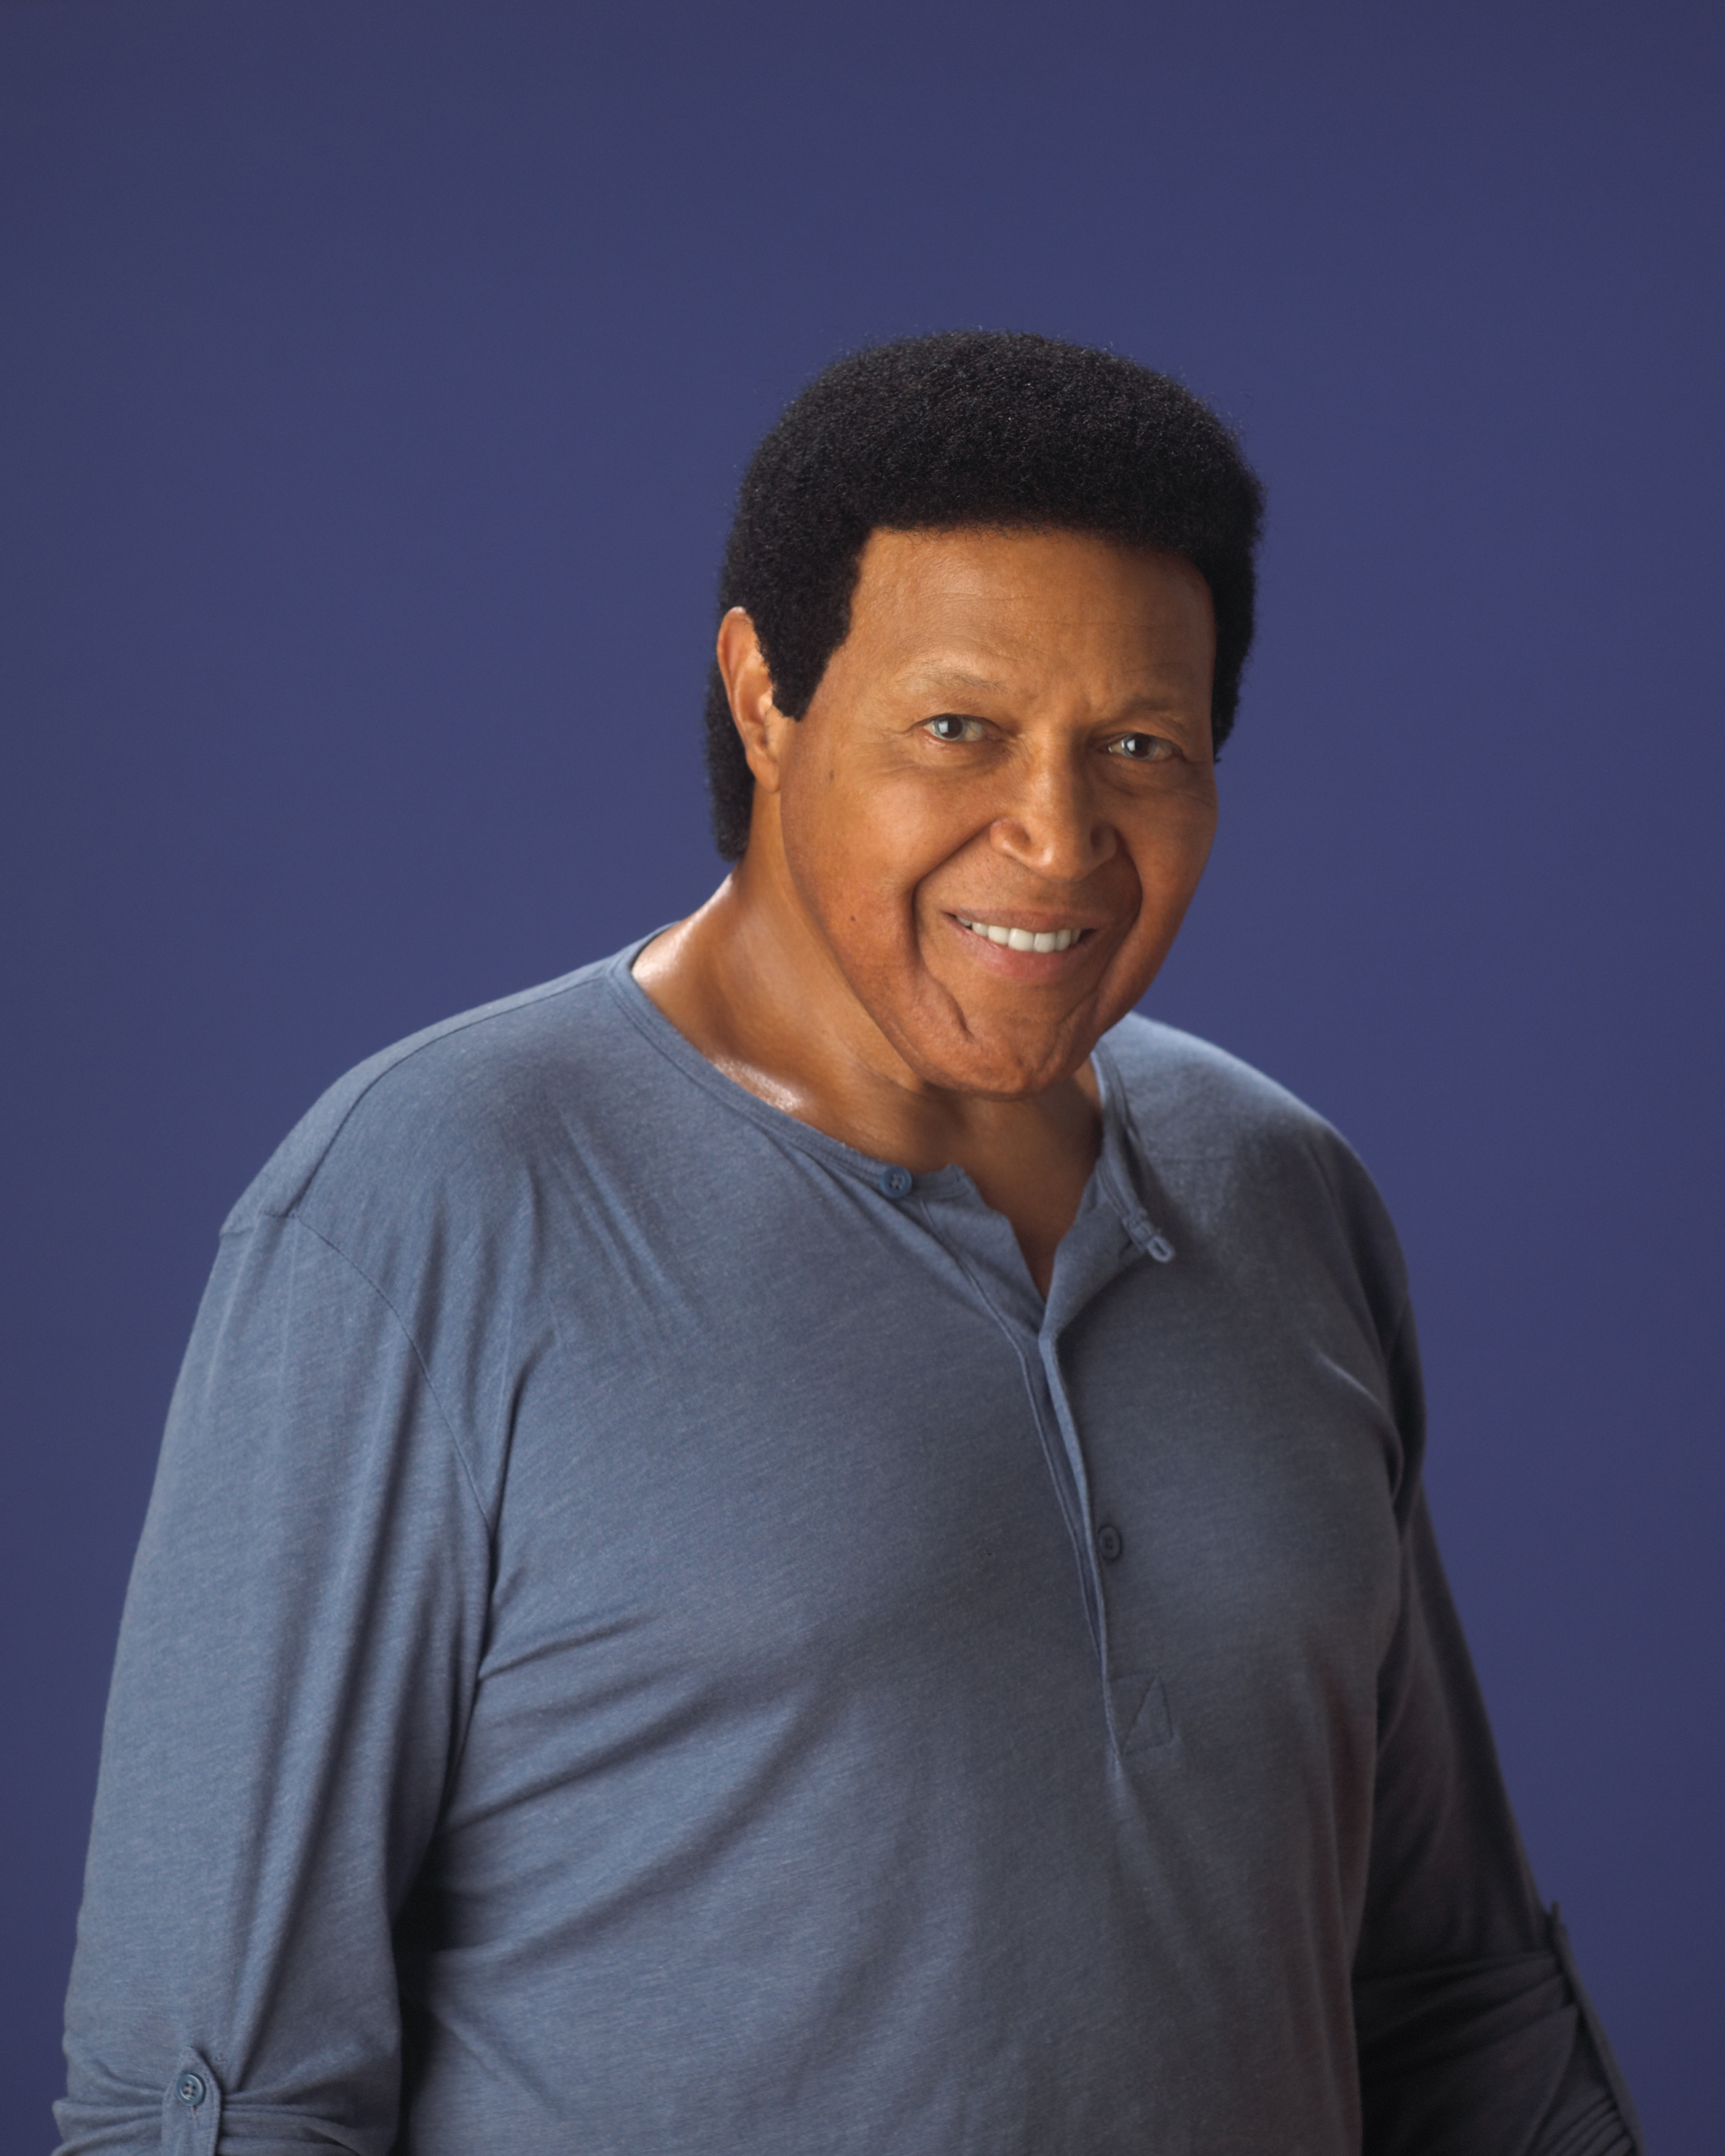 Chubby Checker - Blueberry Hill / Hold Tight